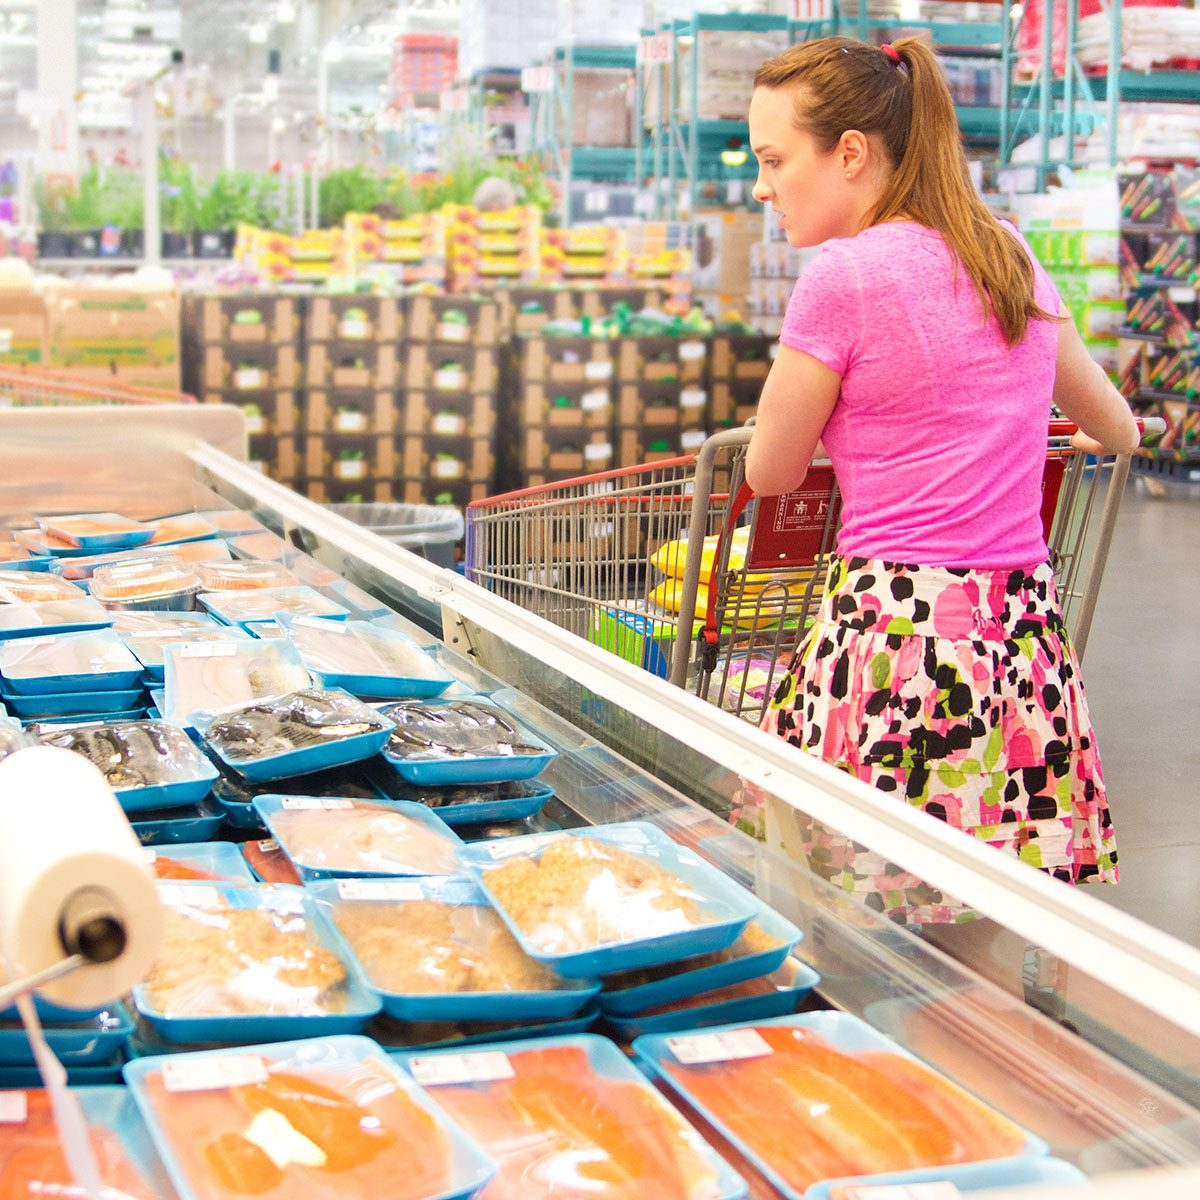 Young woman grocery shopping for fresh fish inside supermarket big box retail store. The customer looks at packaged salmon seafood in the refrigerated section refrigerator case, examining and choosing food for a healthy eating lifestyle. The consumer's shopping cart contains merchandise. Commercial products in the background are displayed for purchase.